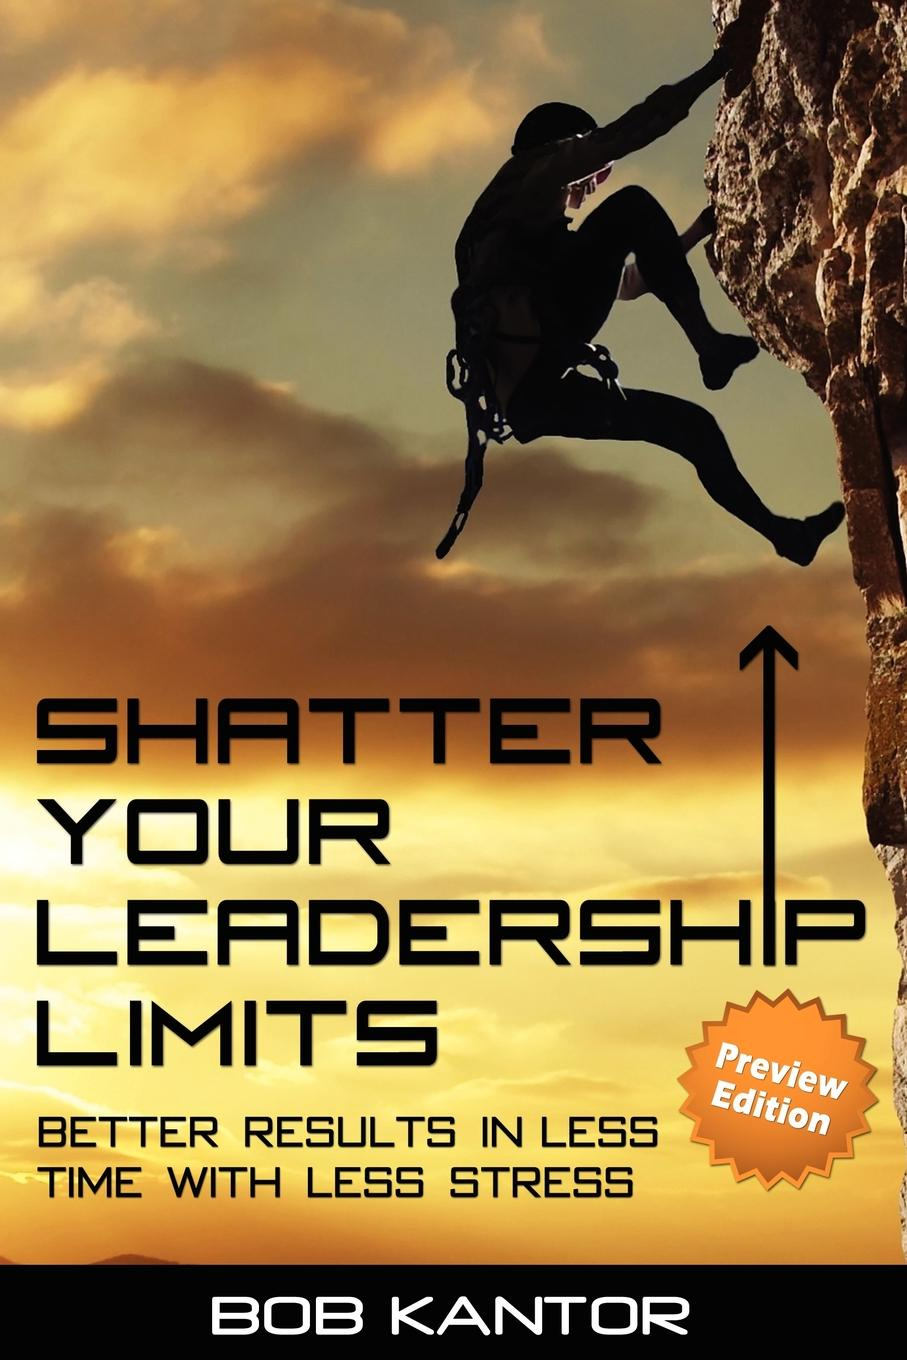 Bob Kantor Shatter Your Leadership Limits. Better Results in Less Time with Less Stress ford saeks superpower how to think act and perform with less effort and better results